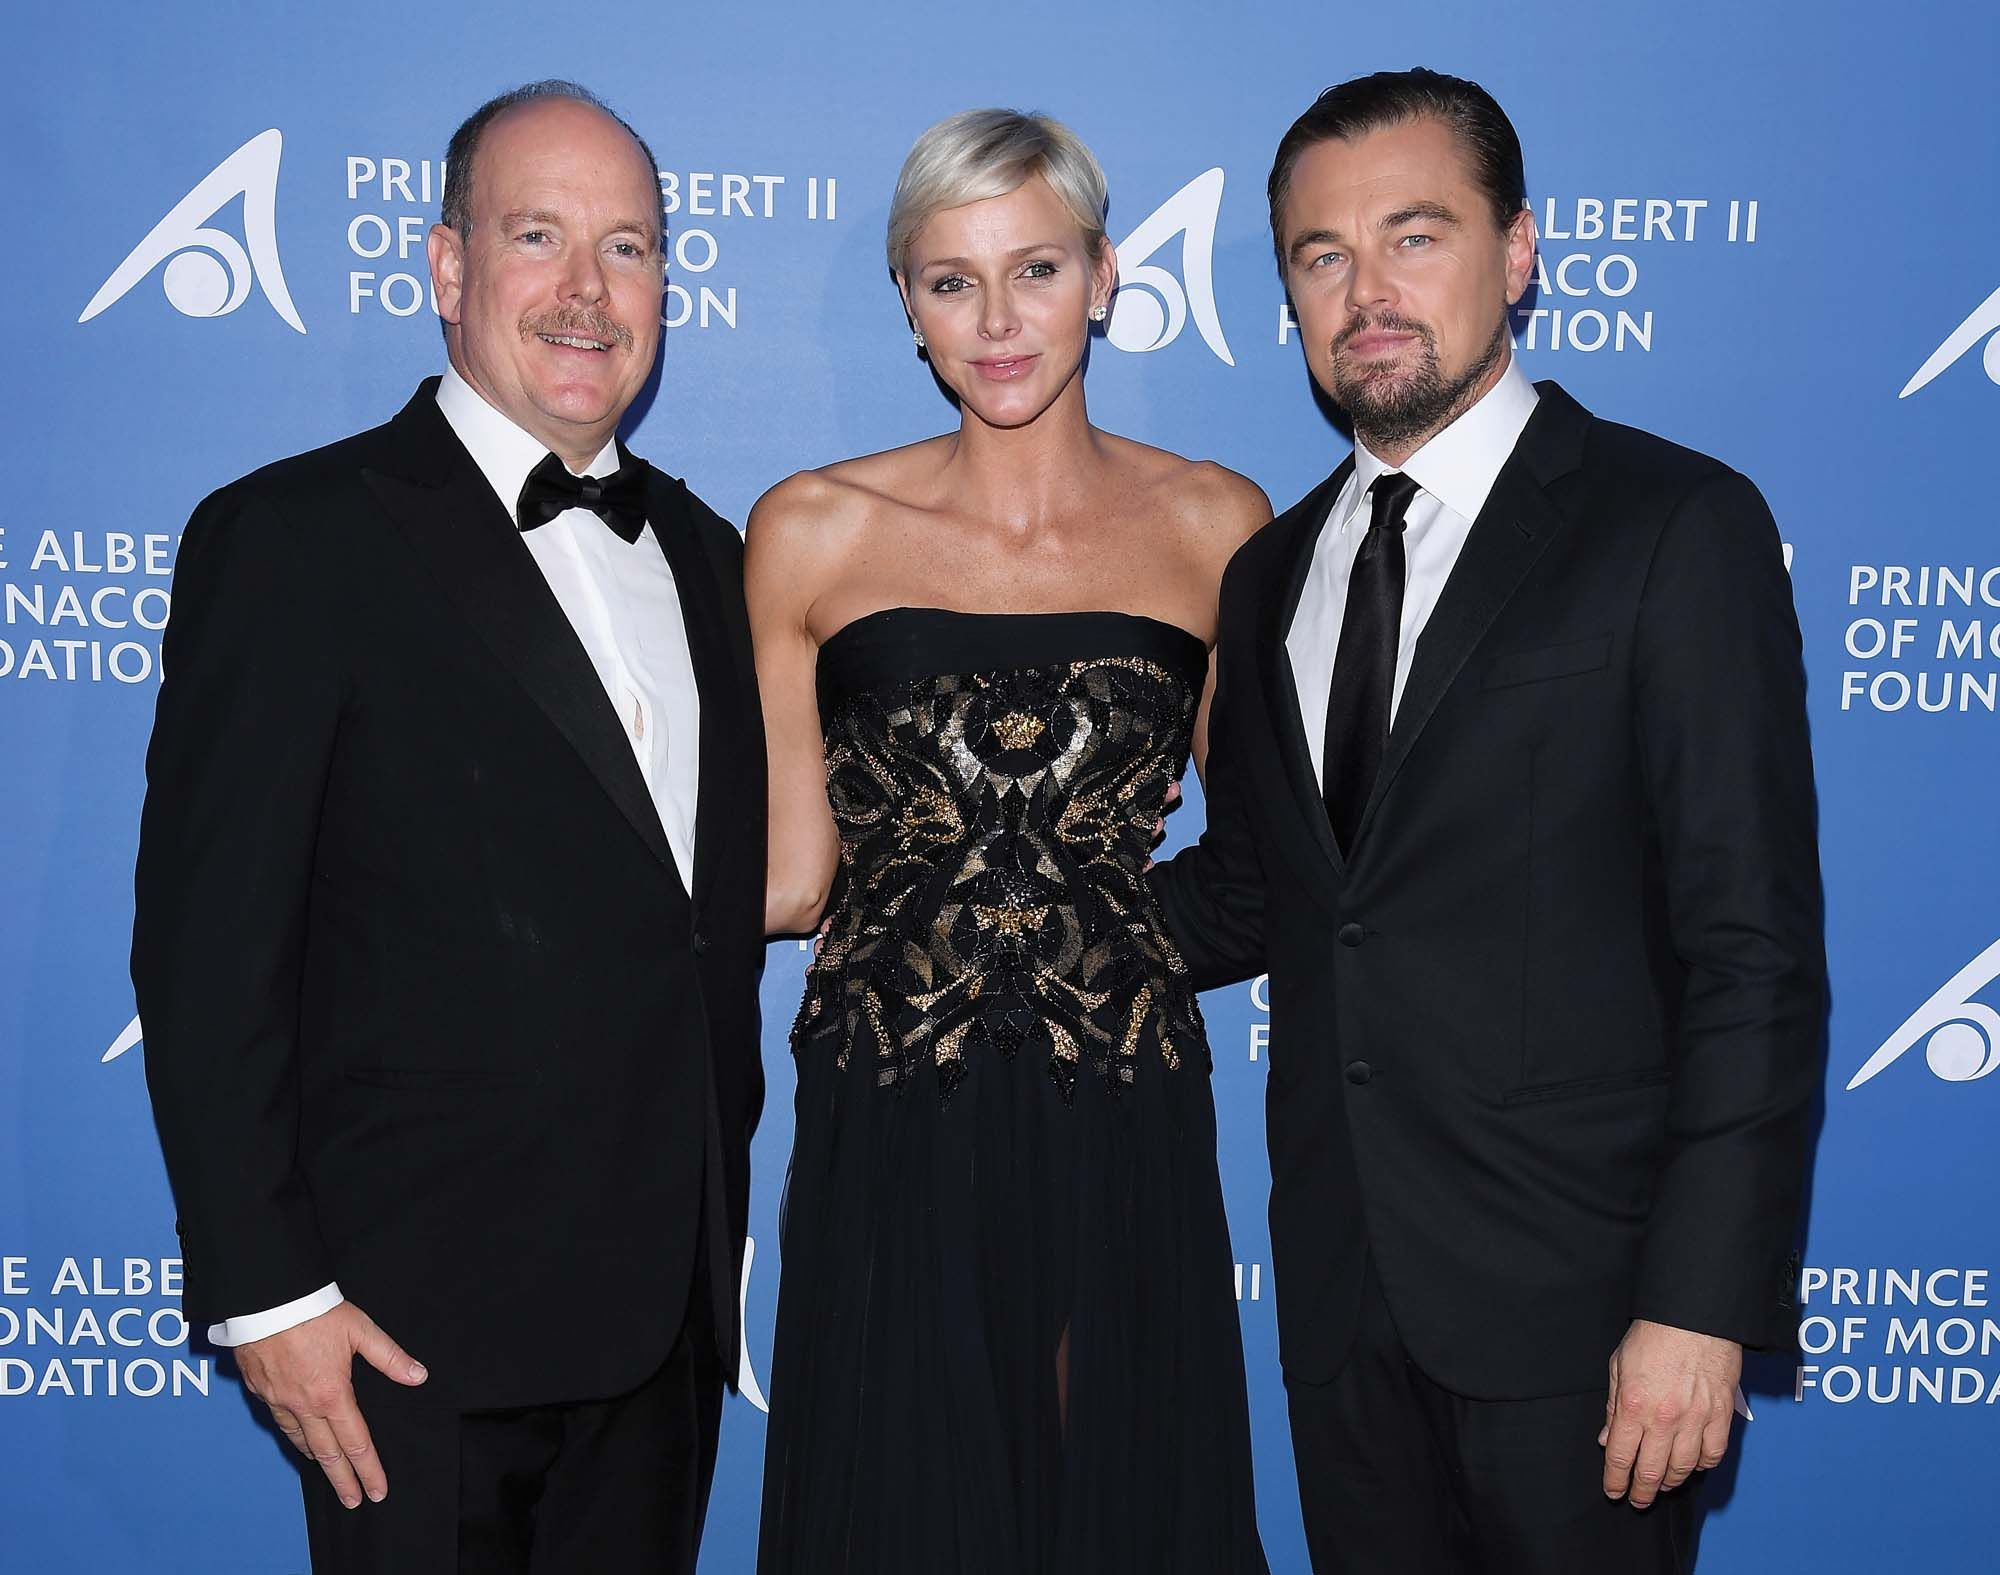 The prince fights for the cause, together with Charlene, Princess of Monaco, and actor Leonardo DiCaprio at the Monte Carlo Gala (photo by Getty Images)